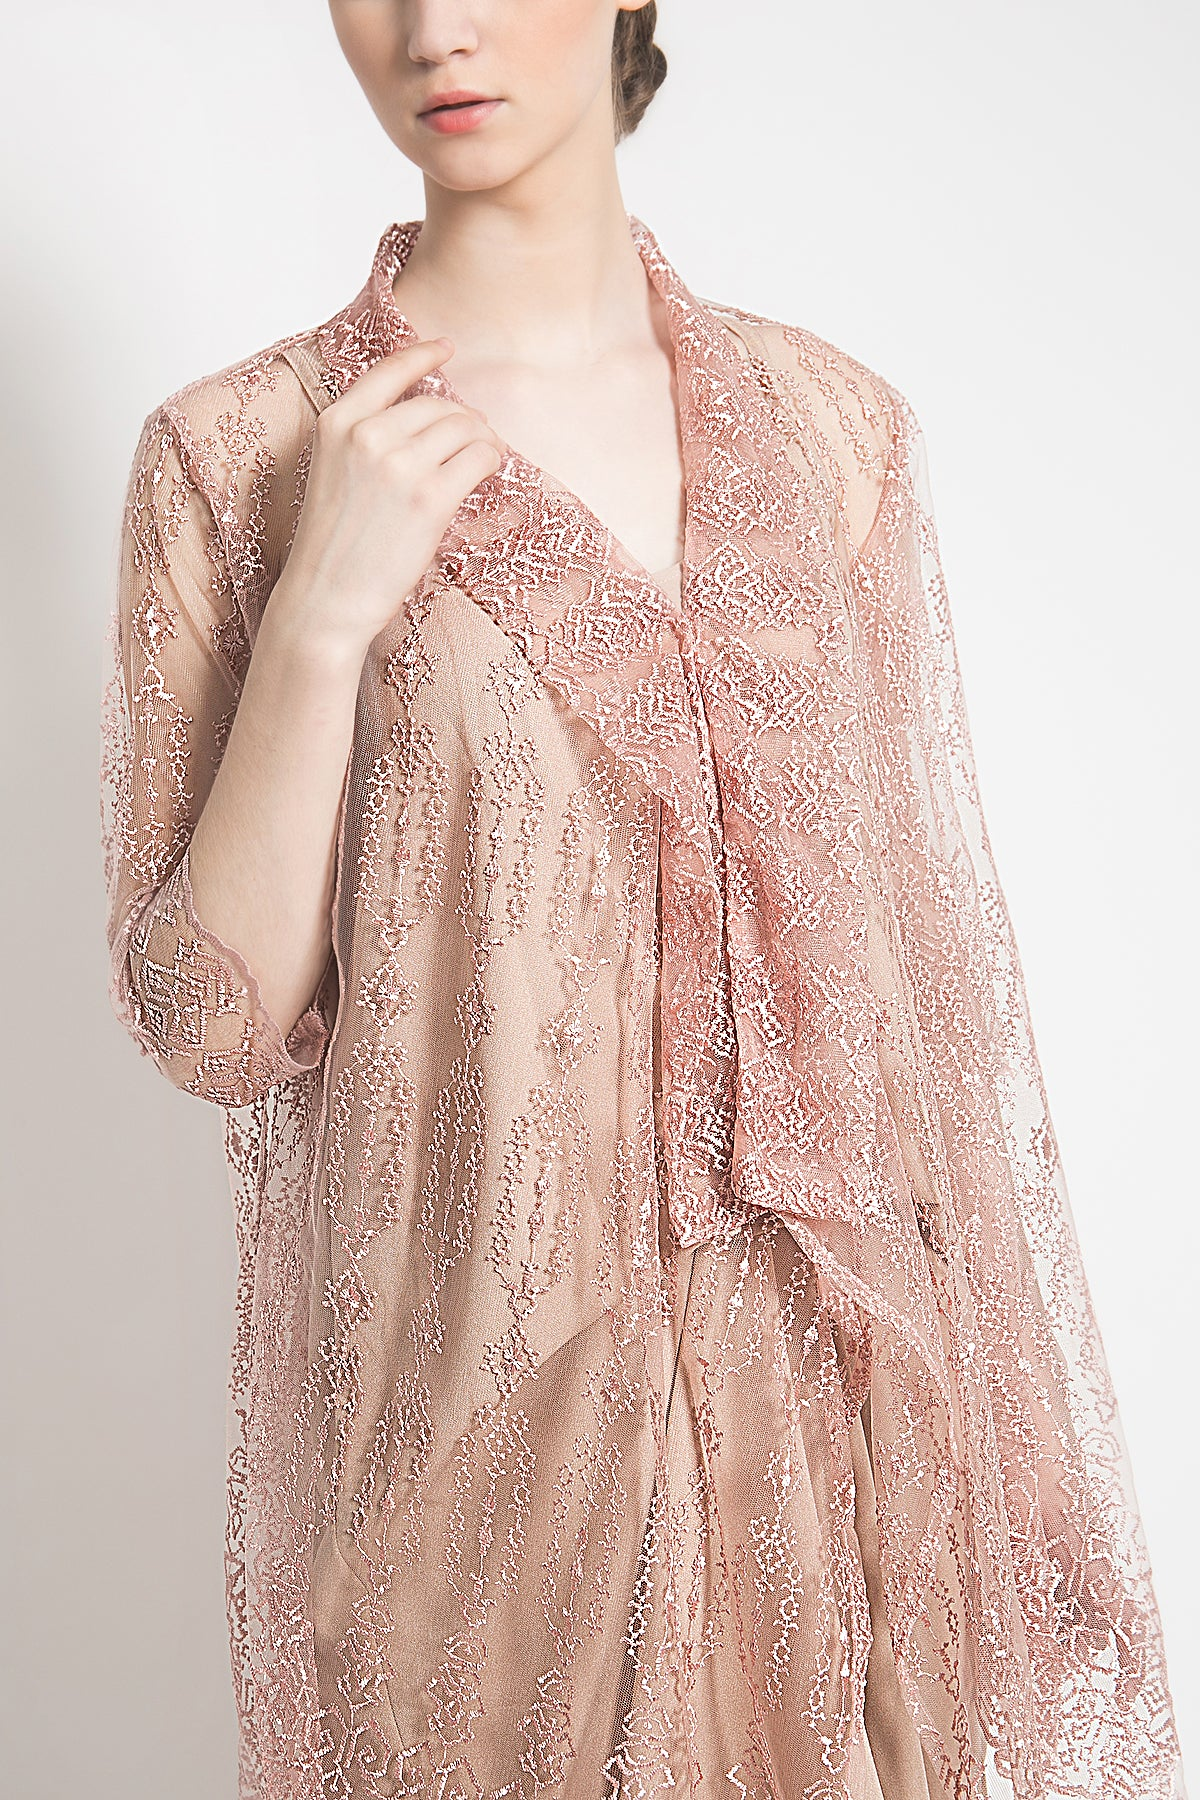 Nashira Dress in Pink